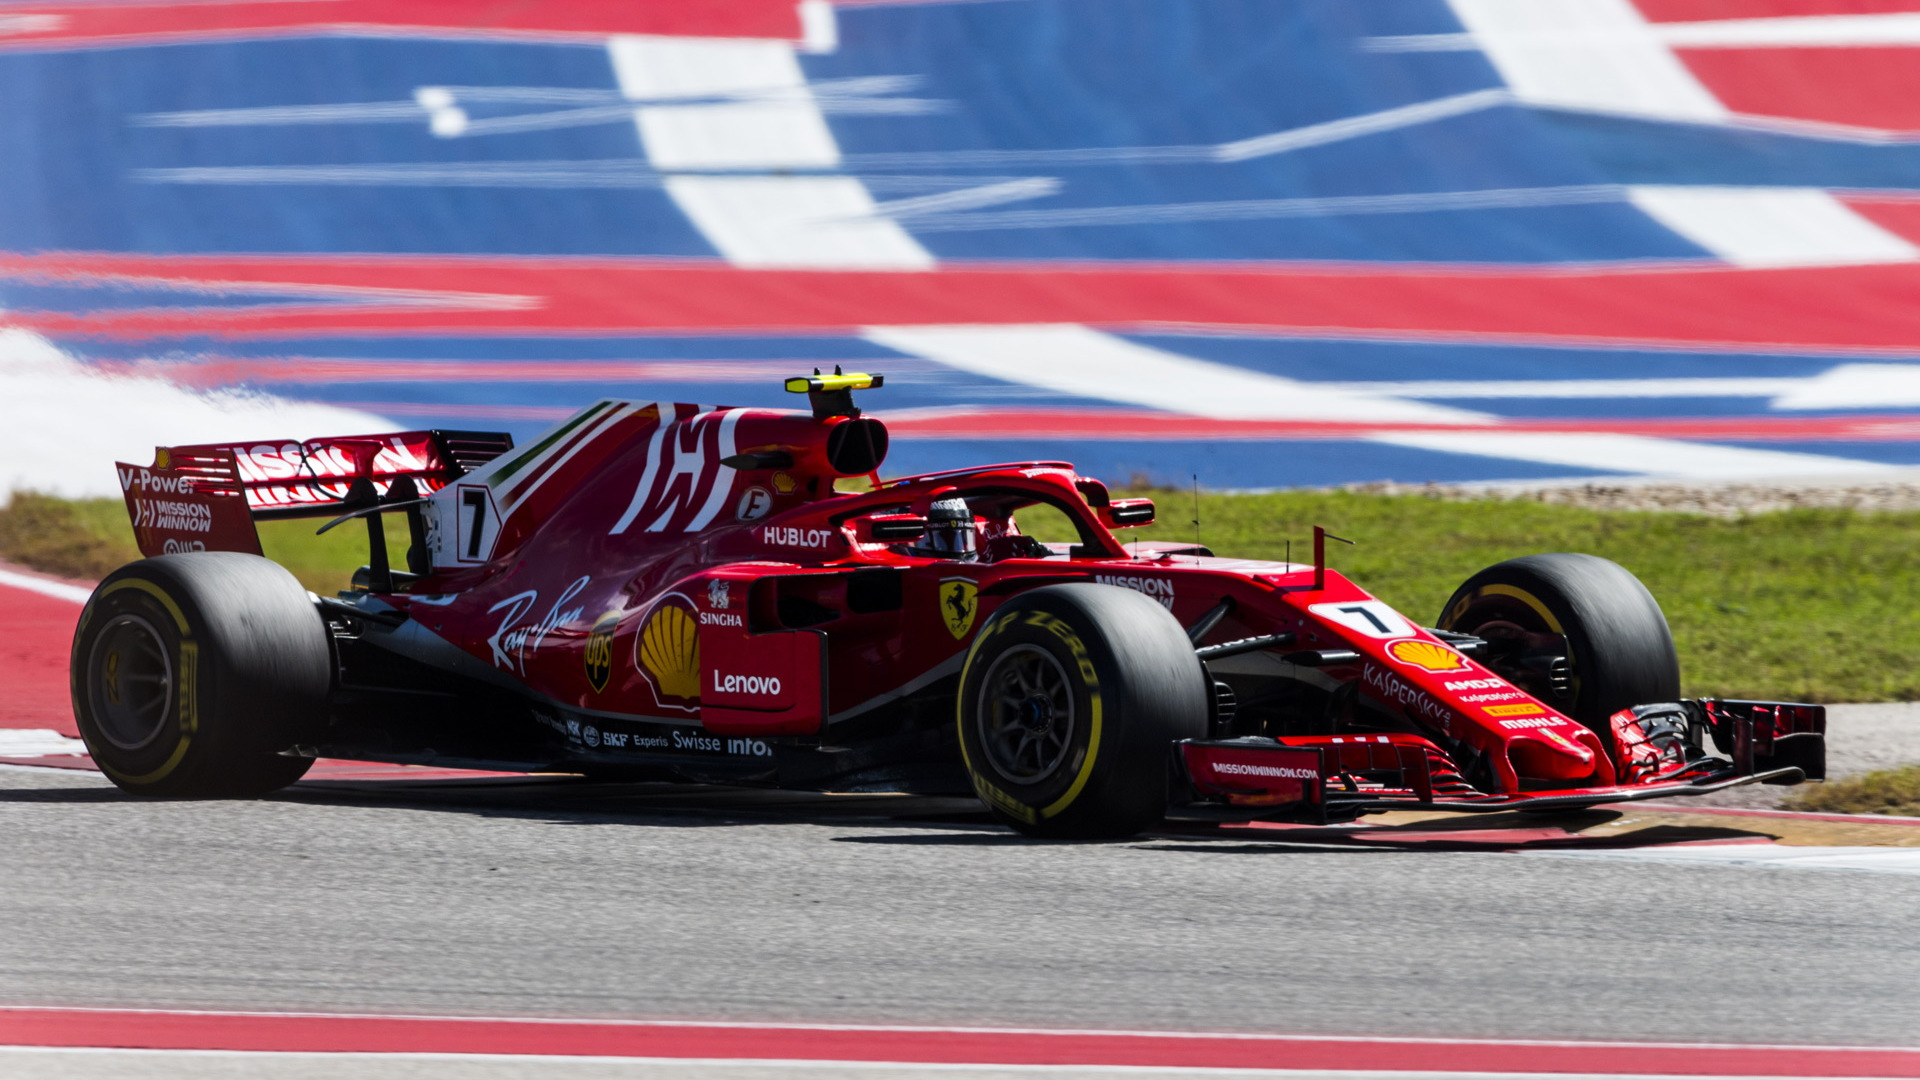 Ferrari's Kimi Räikkönen at the 2018 Formula 1 United States Grand Prix